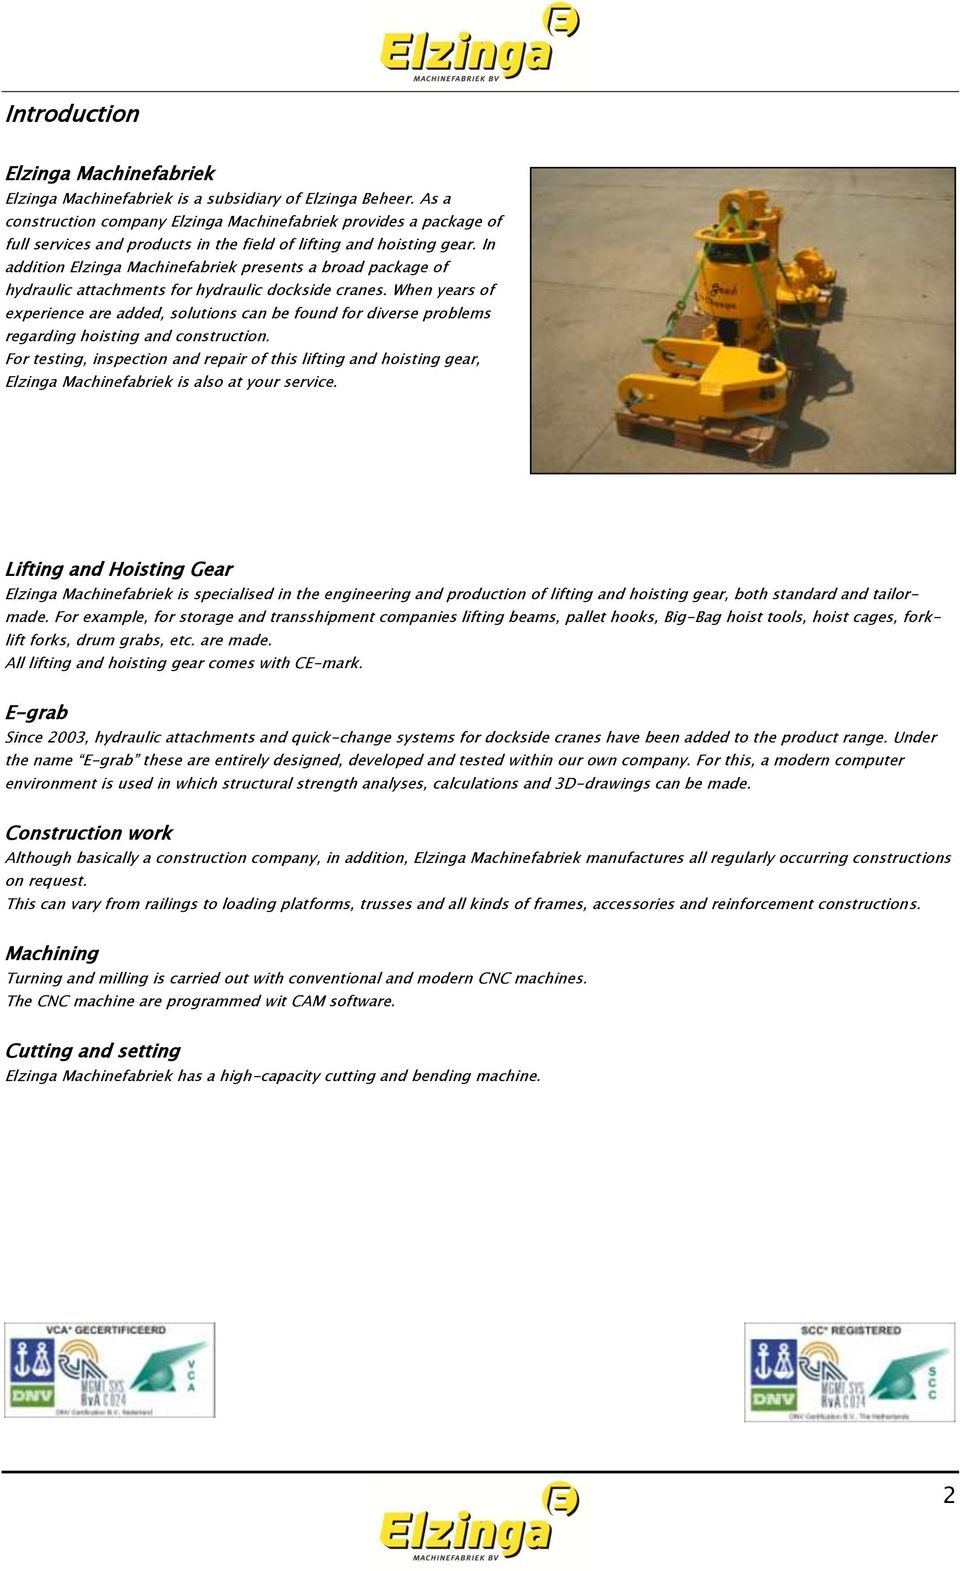 In addition Elzinga Machinefabriek presents a broad package of hydraulic attachments for hydraulic dockside cranes.